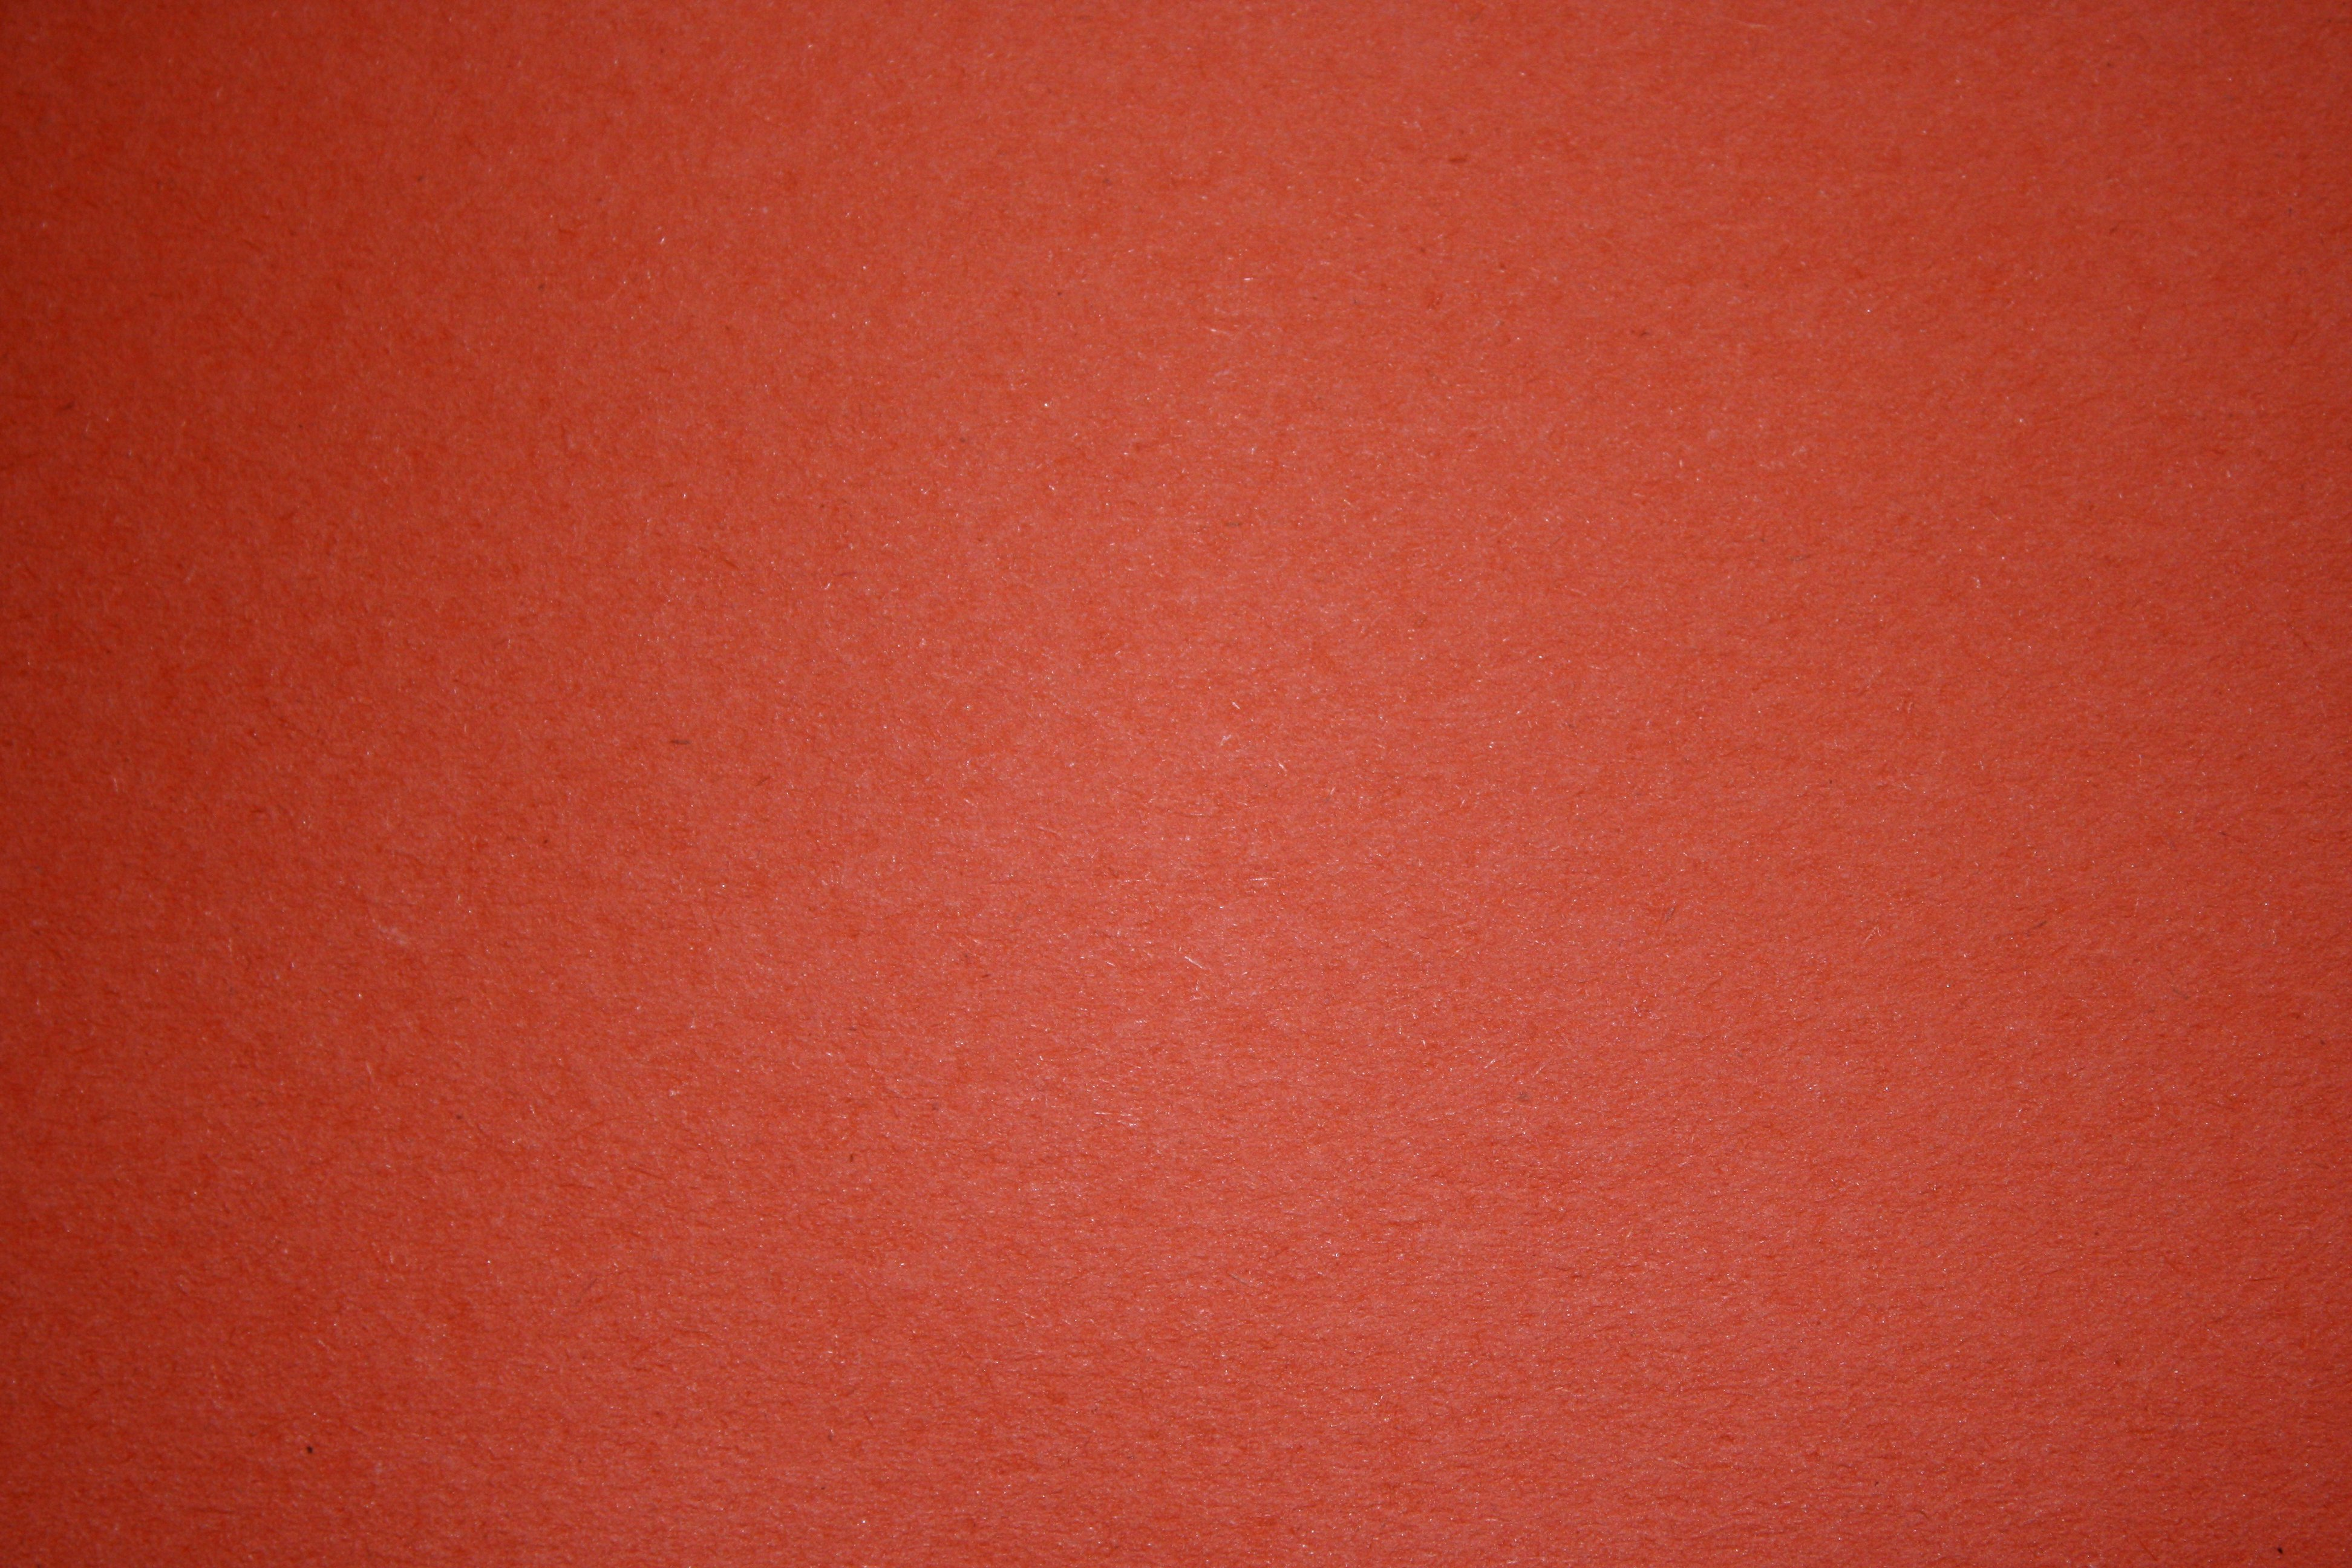 red construction paper texture picture free photograph